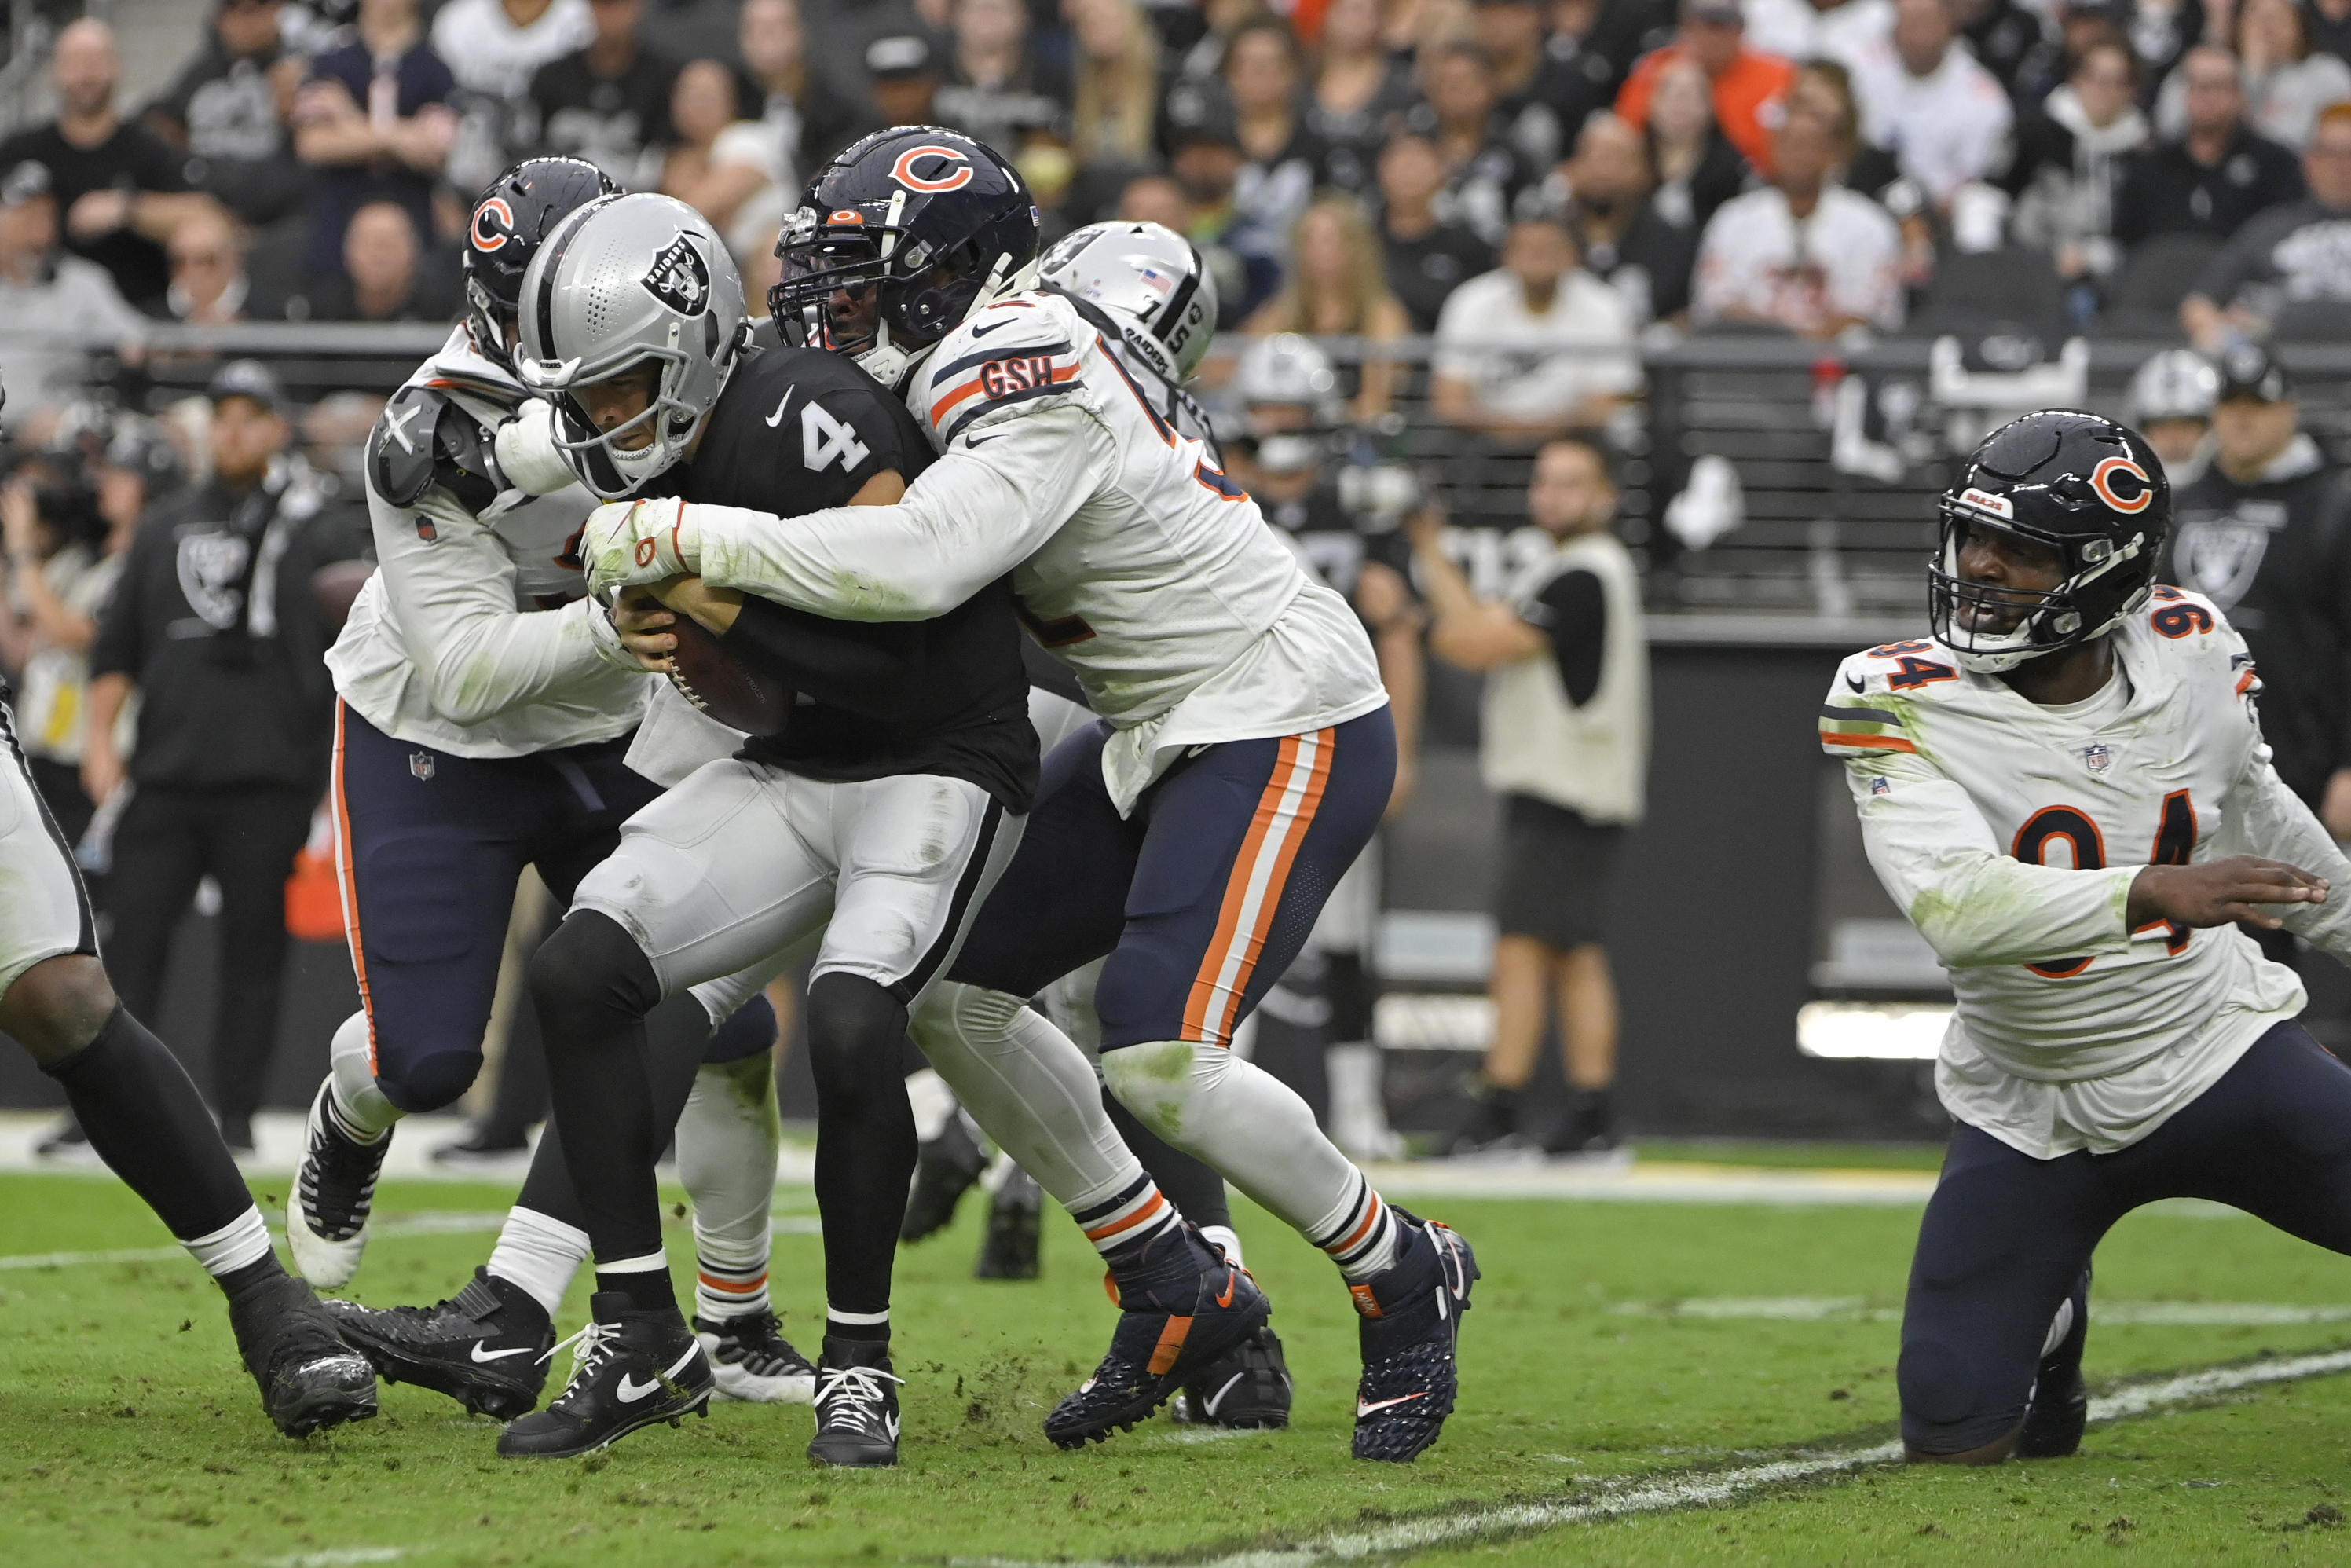 Outside linebacker Khalil Mack (52, sacking Derek Carr last week) has five of the Bears' NFL-leading 18 sacks through five games this season —not including a sack on a two-point conversion against the Raiders.